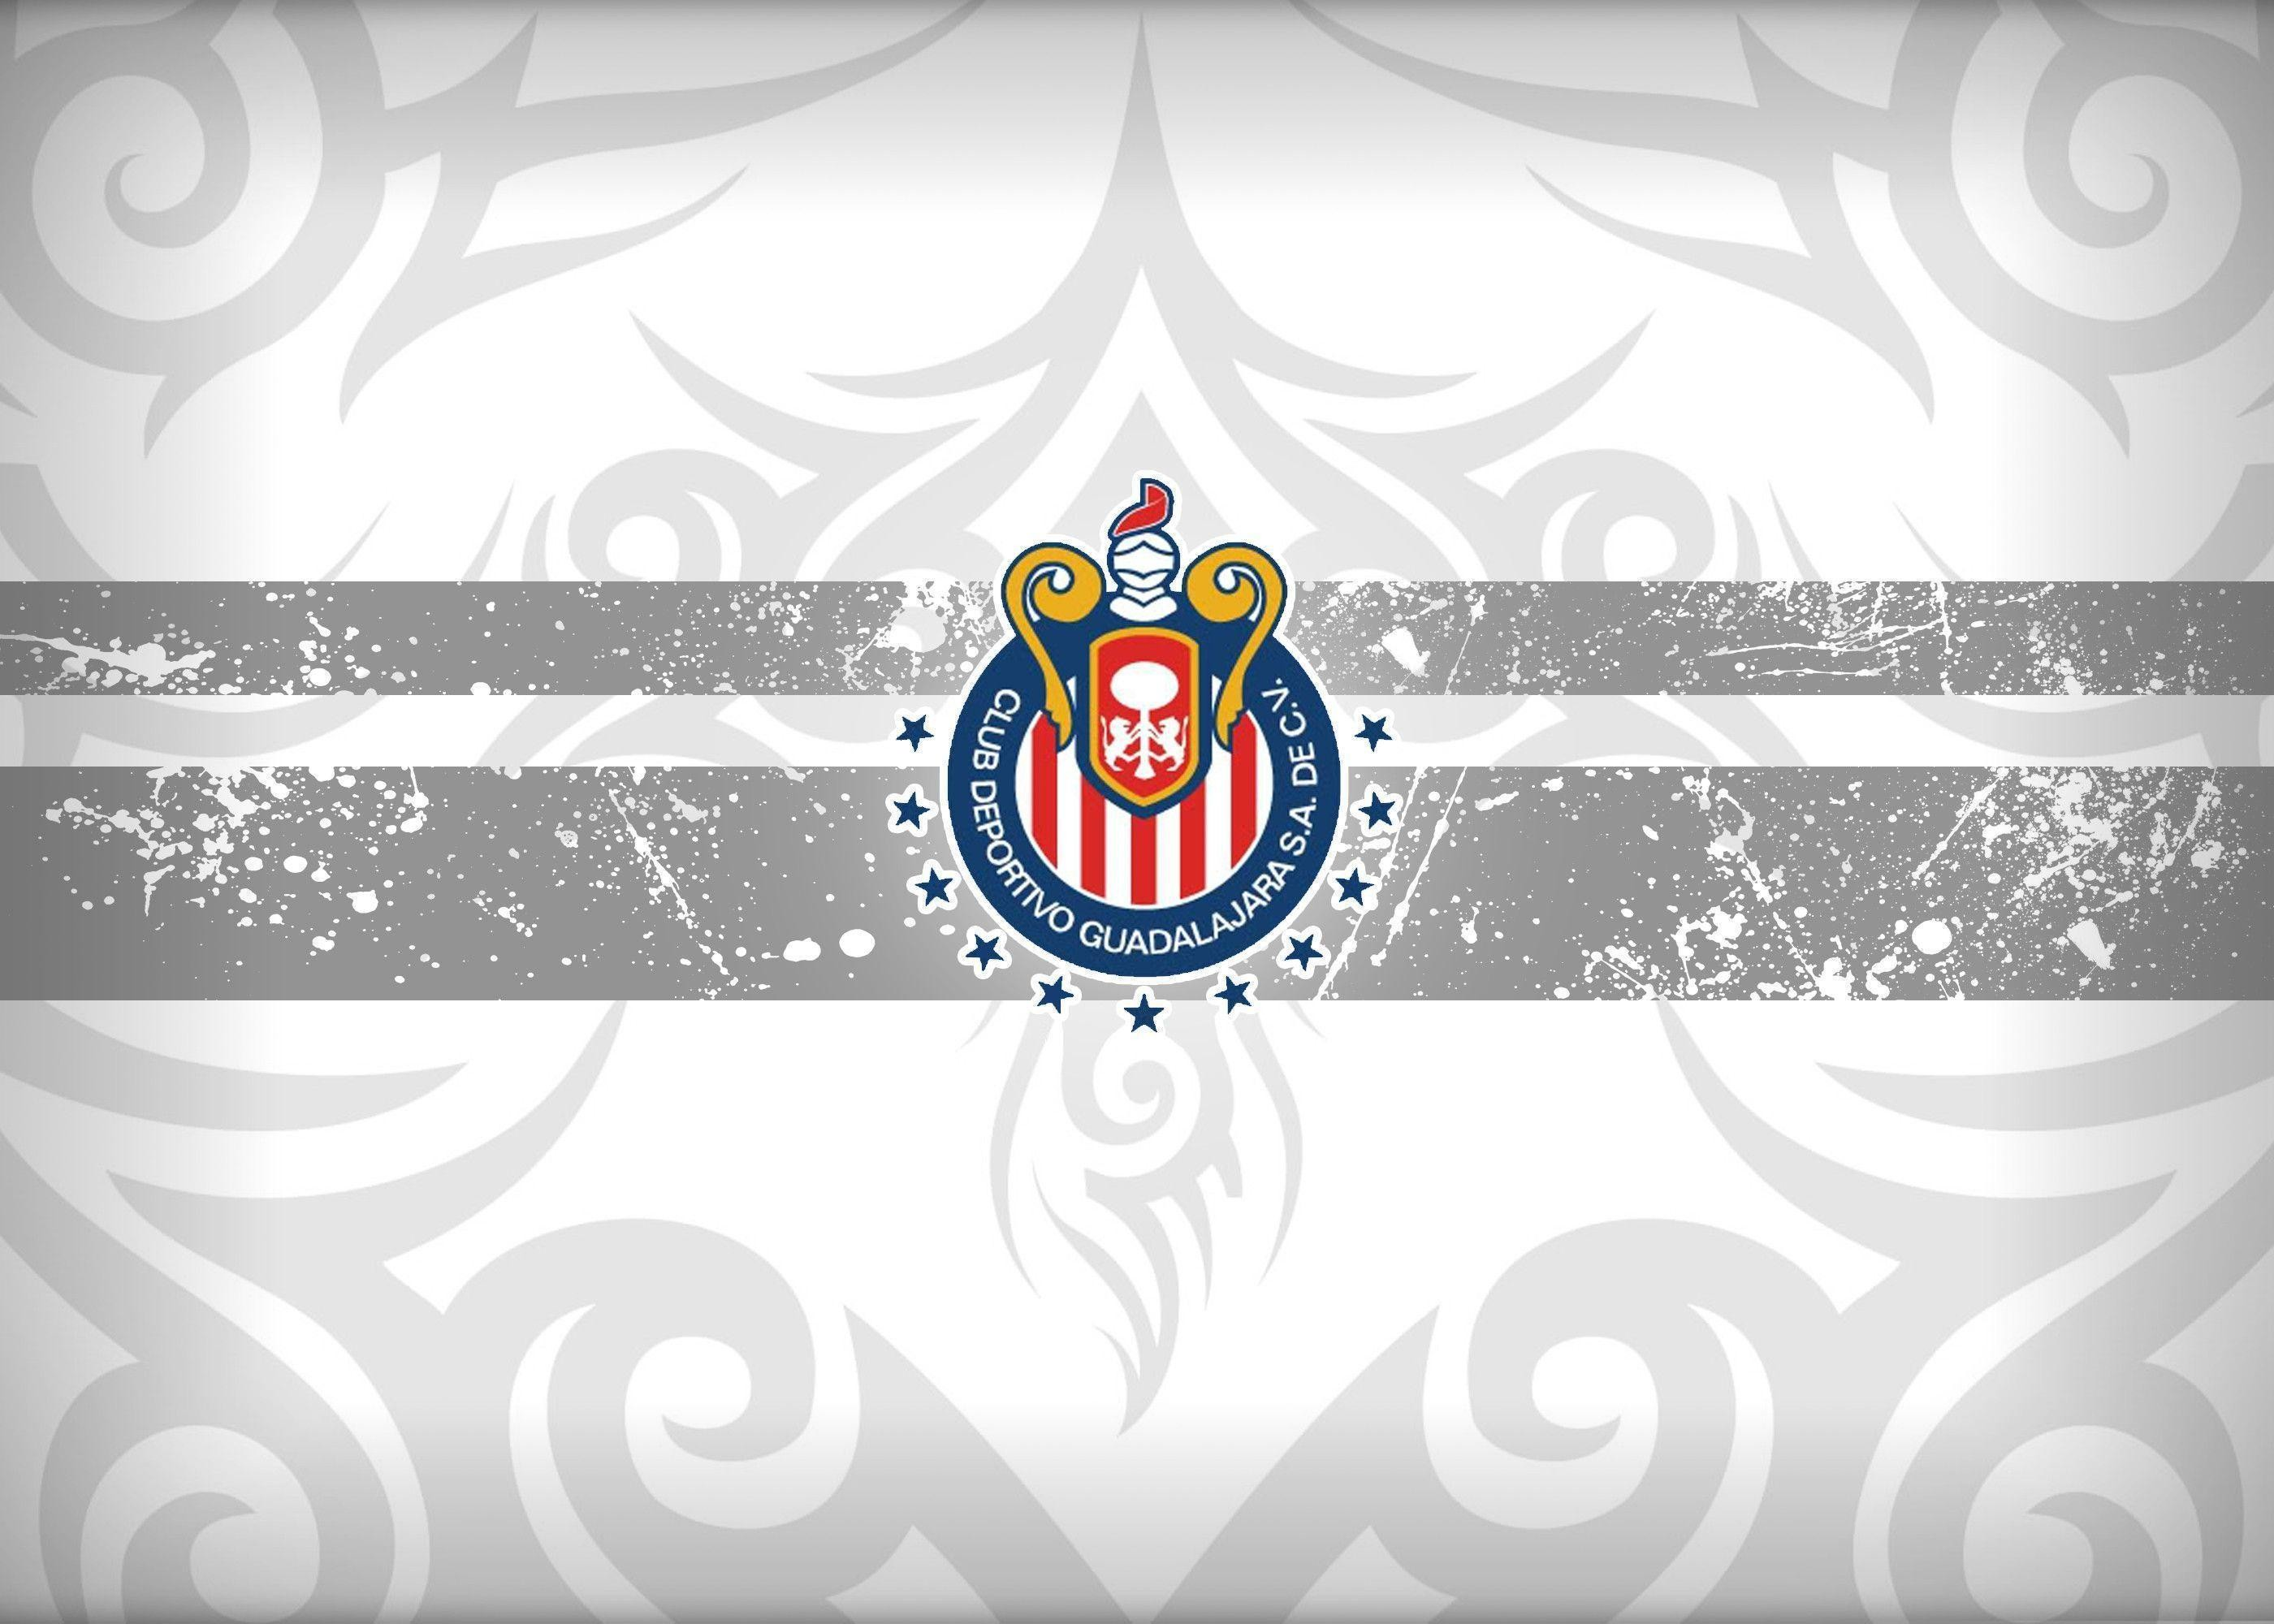 2800x2000 - C.D. Guadalajara Wallpapers 24